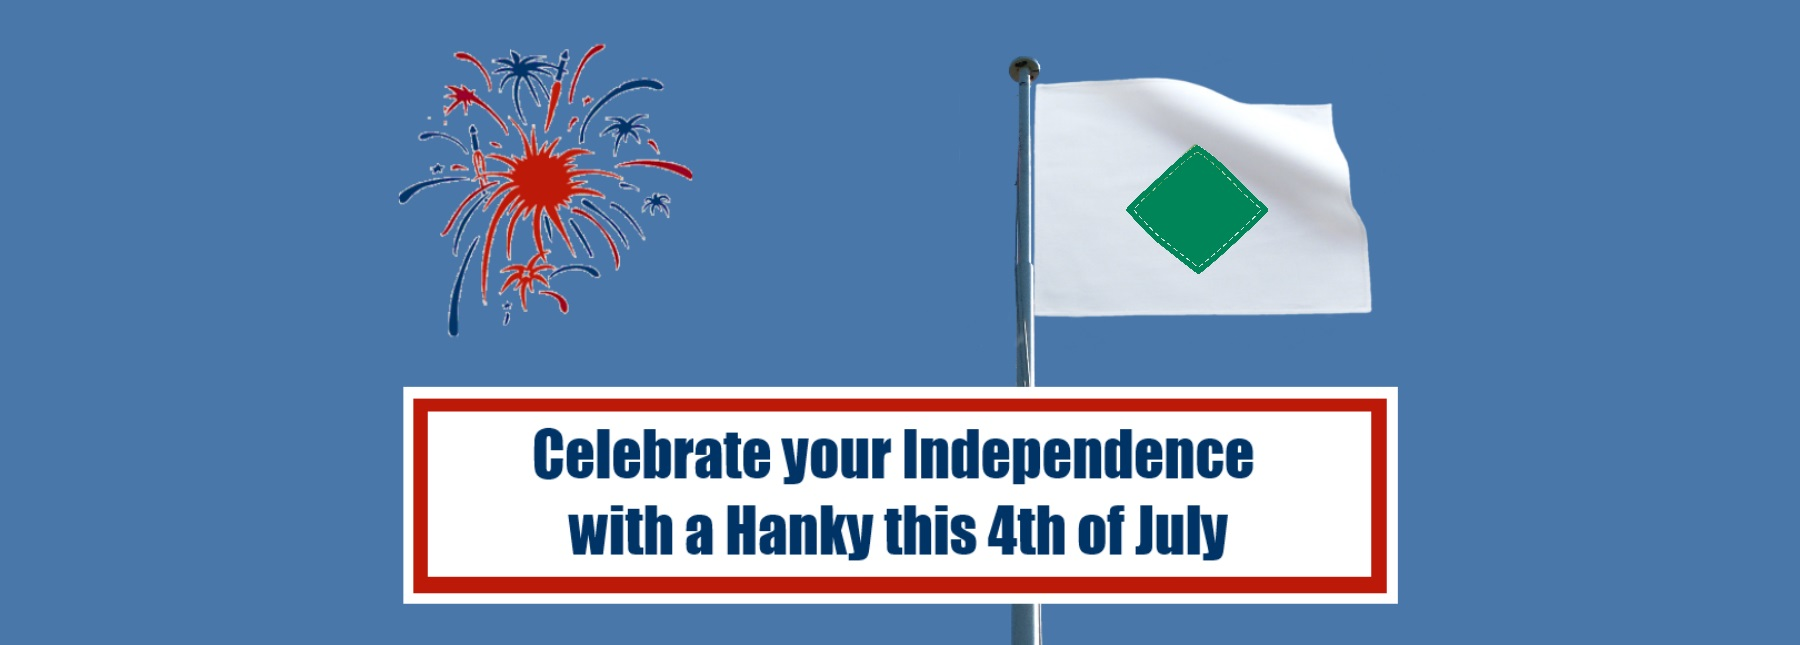 Celebrate your independence this July 4th with a hanky